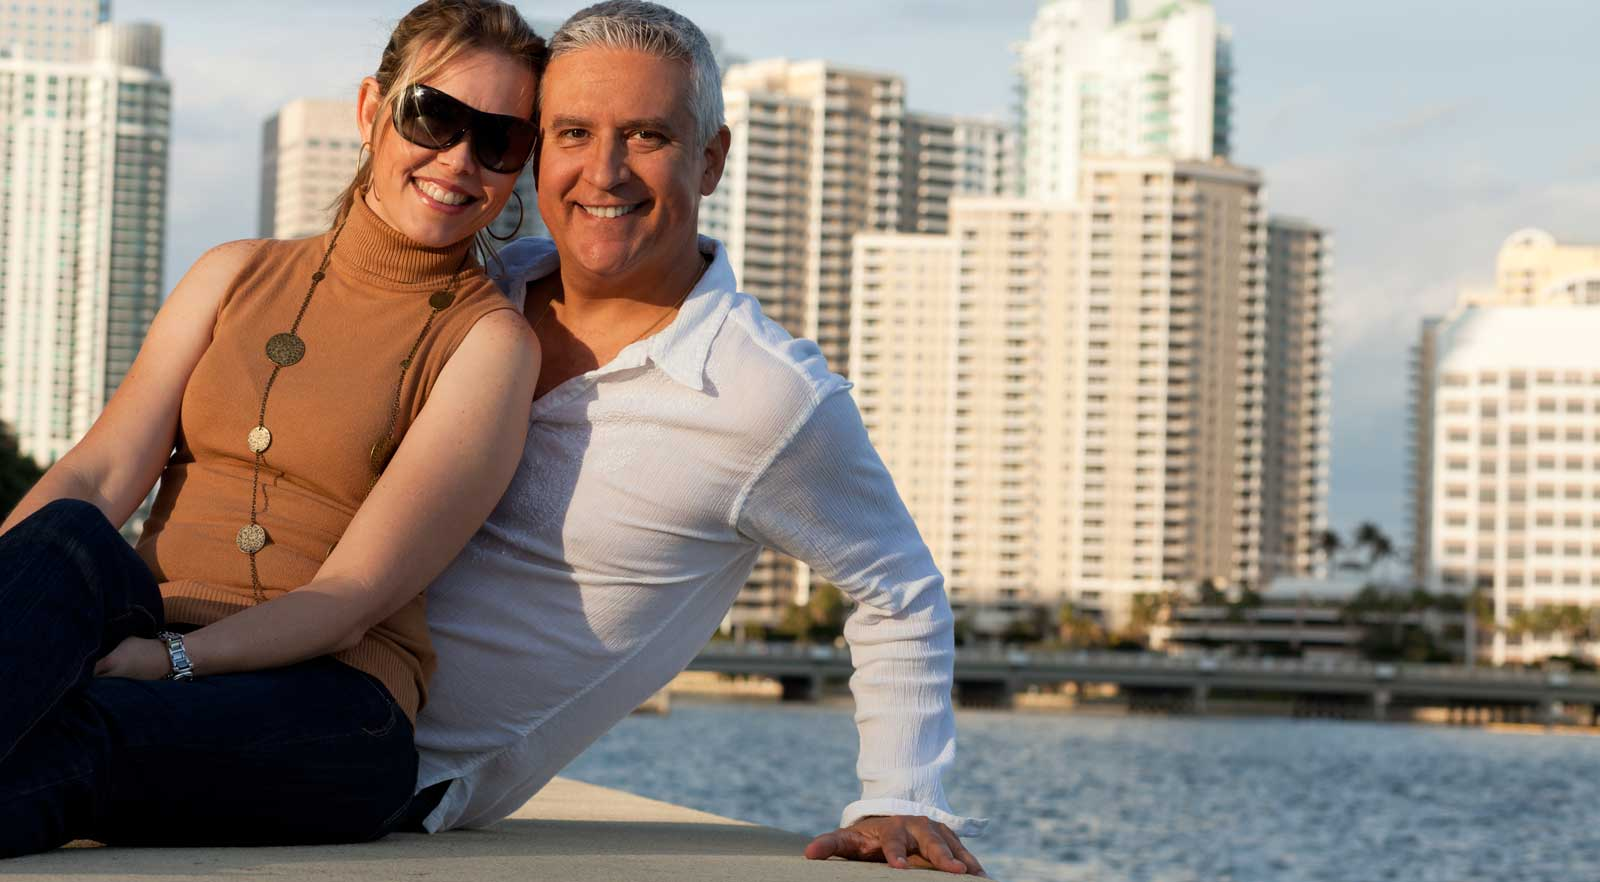 bronaugh single men over 50 That's one of the most common questions that women ask when they get back into the over 50 dating game unfortunately, the statistics aren't on our side by the time we reach our late 50s and early 60s, the ratio of single men to single women definitely drops.